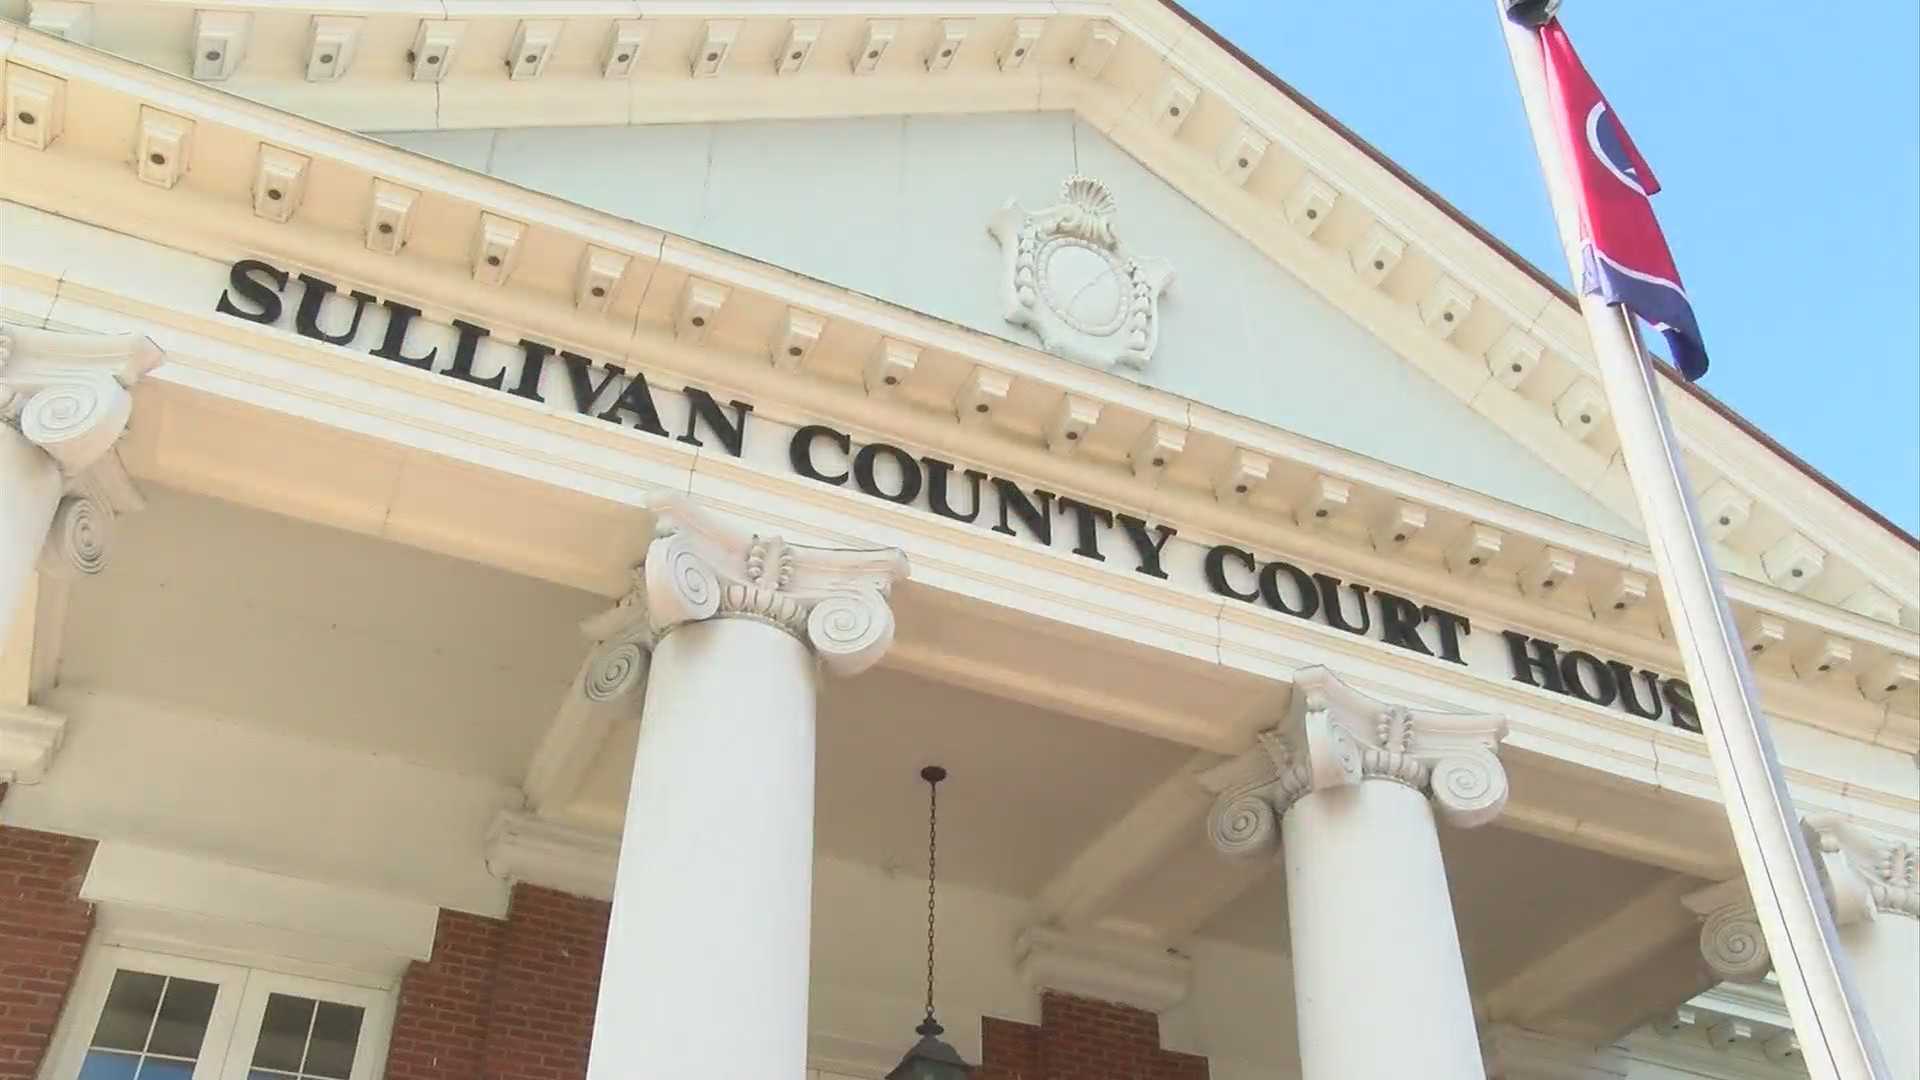 Sullivan County to raise property tax for county needs